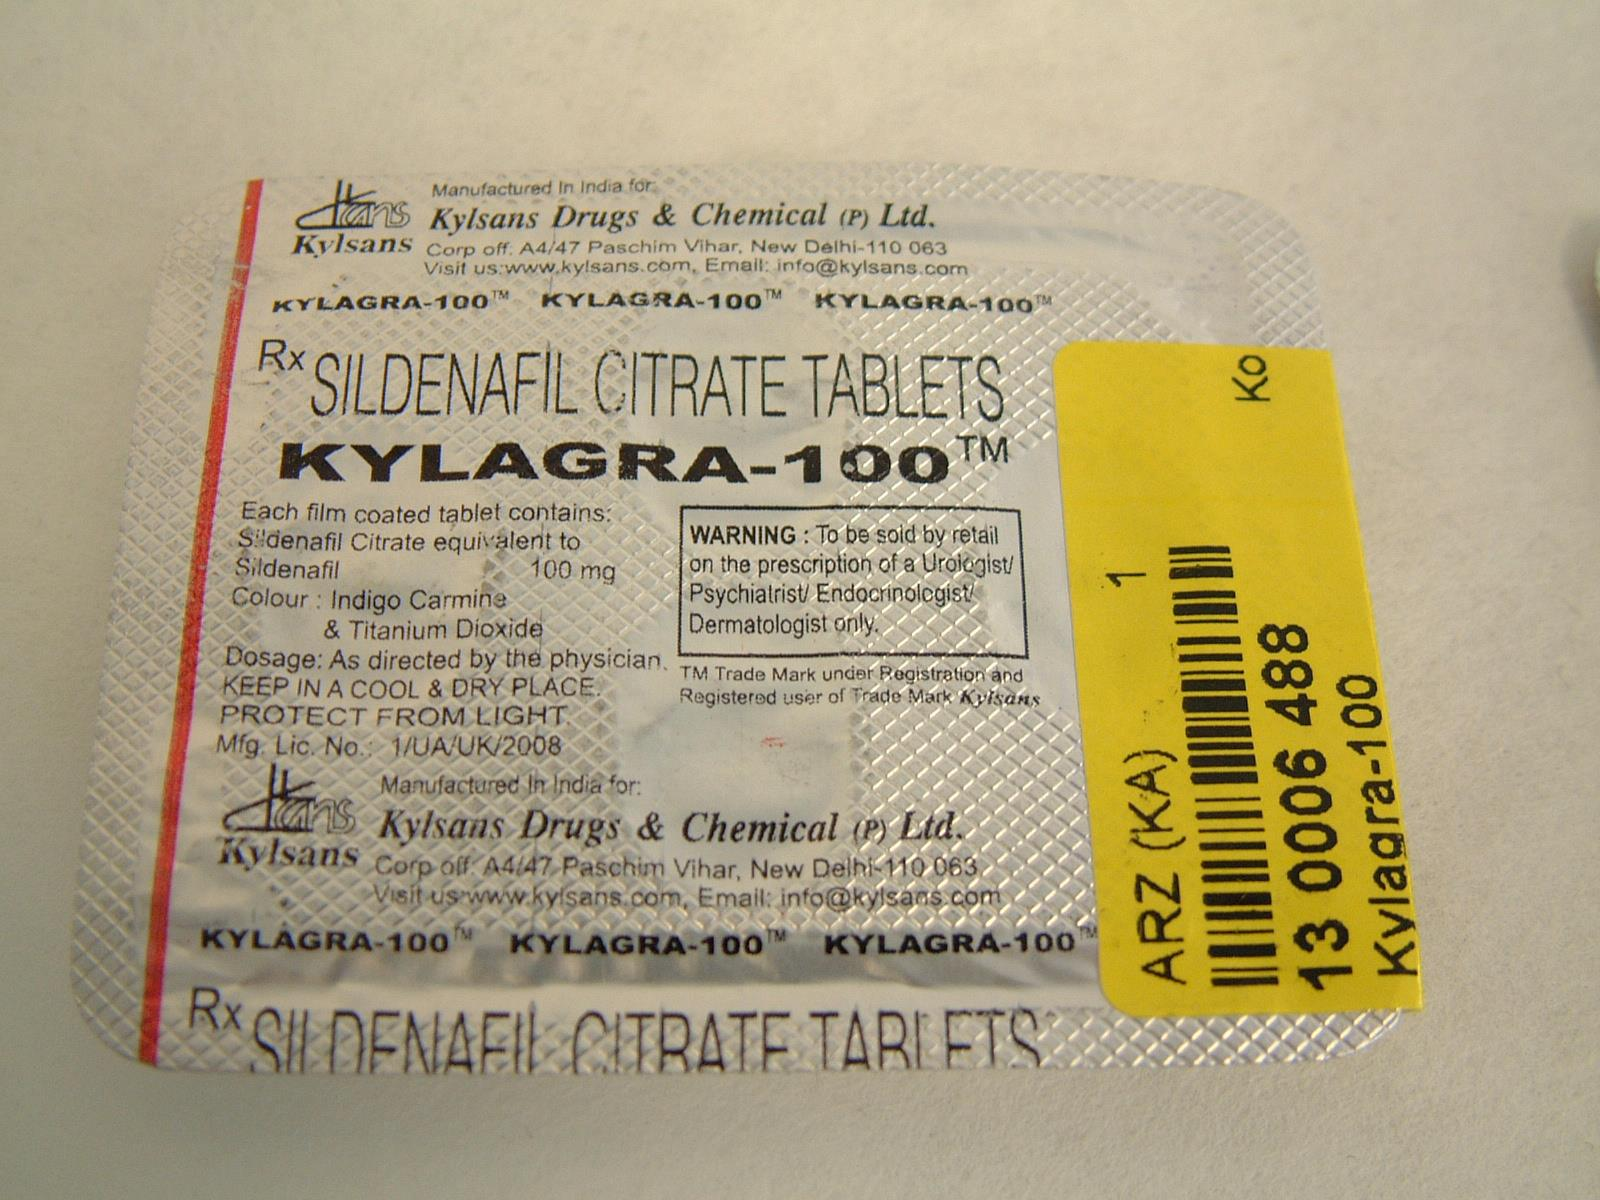 Image of the illigal product: Kylagra